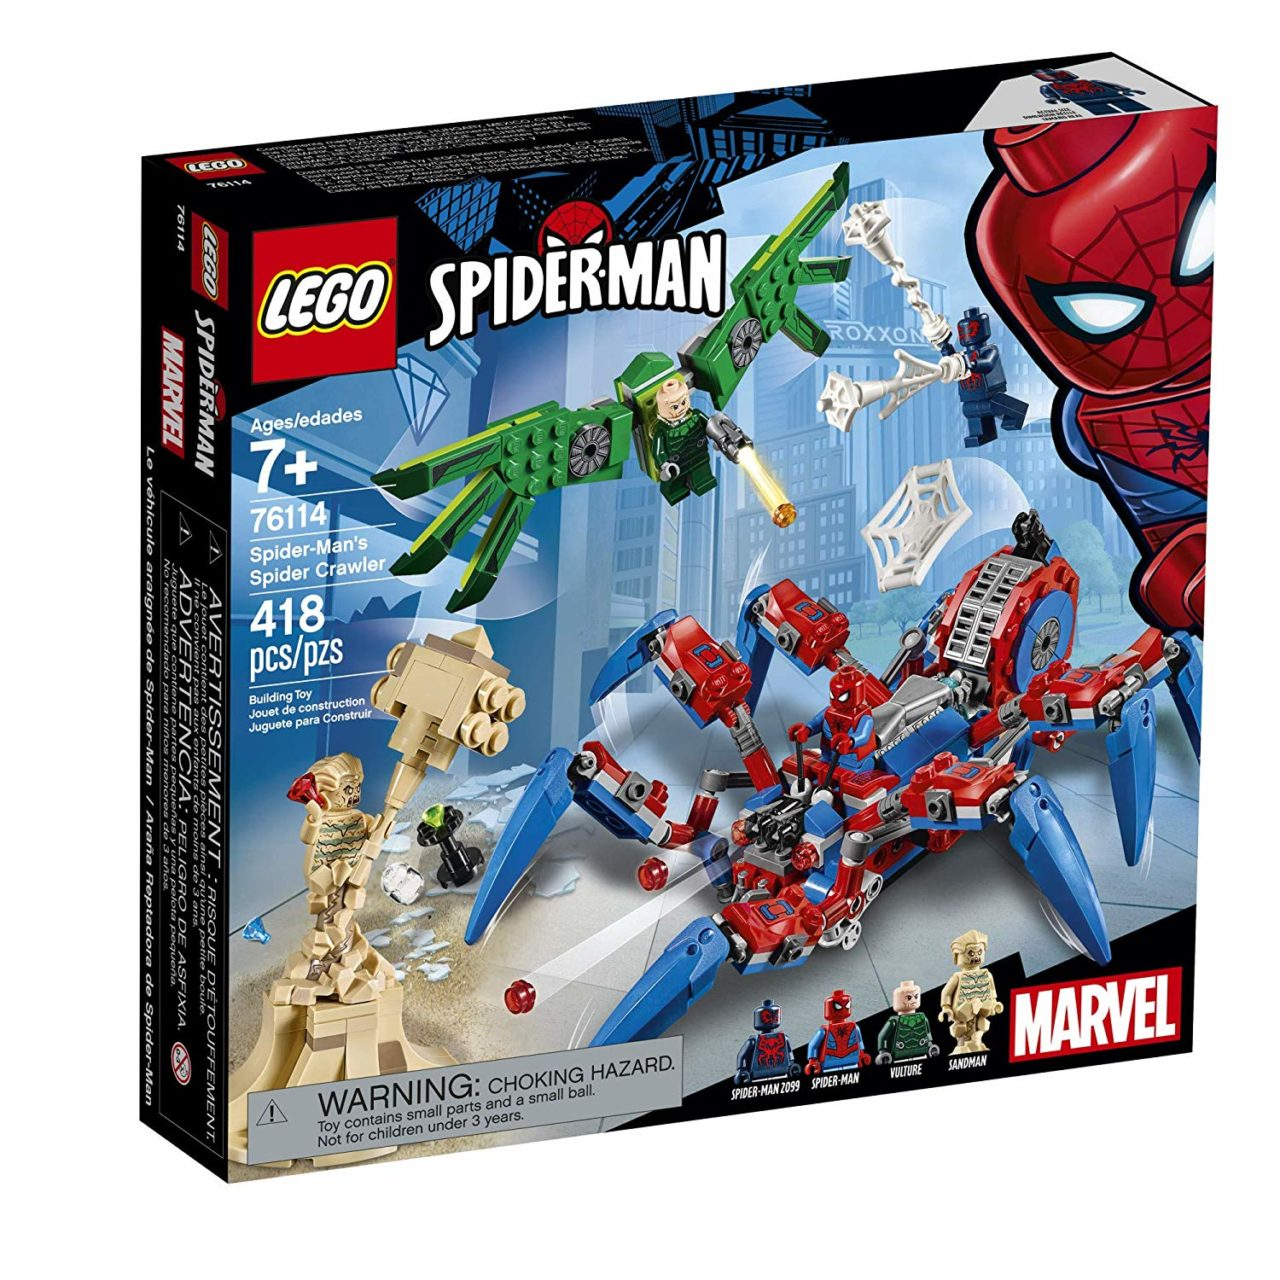 76114 Spider-Man's Spider Crawler box image